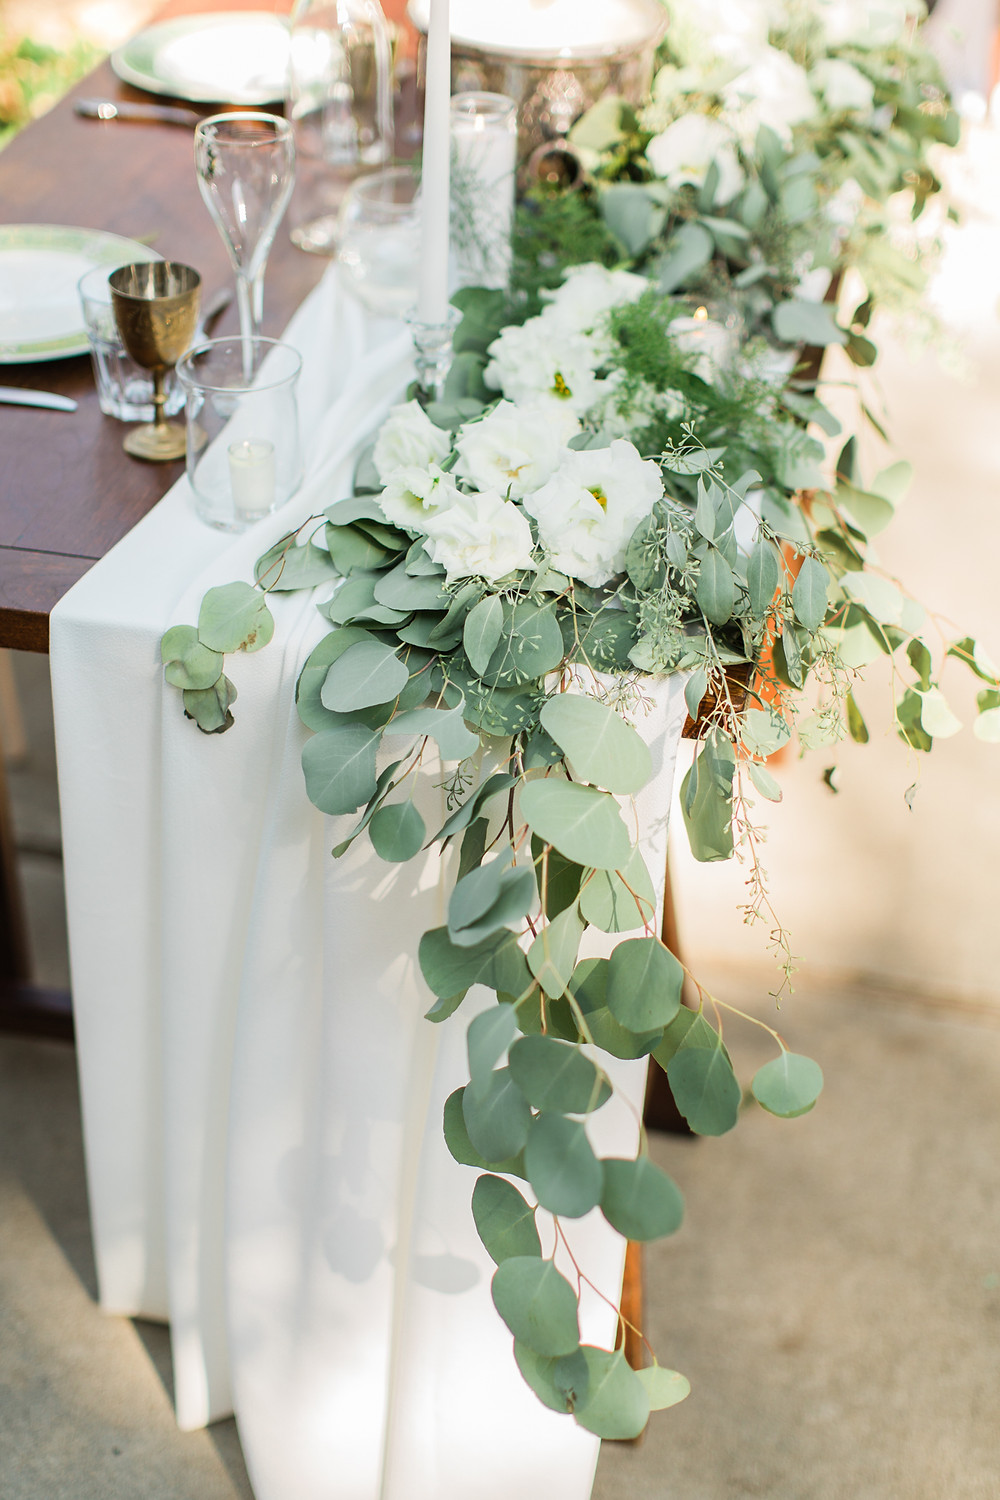 Floral details draped across the sweetheart table.